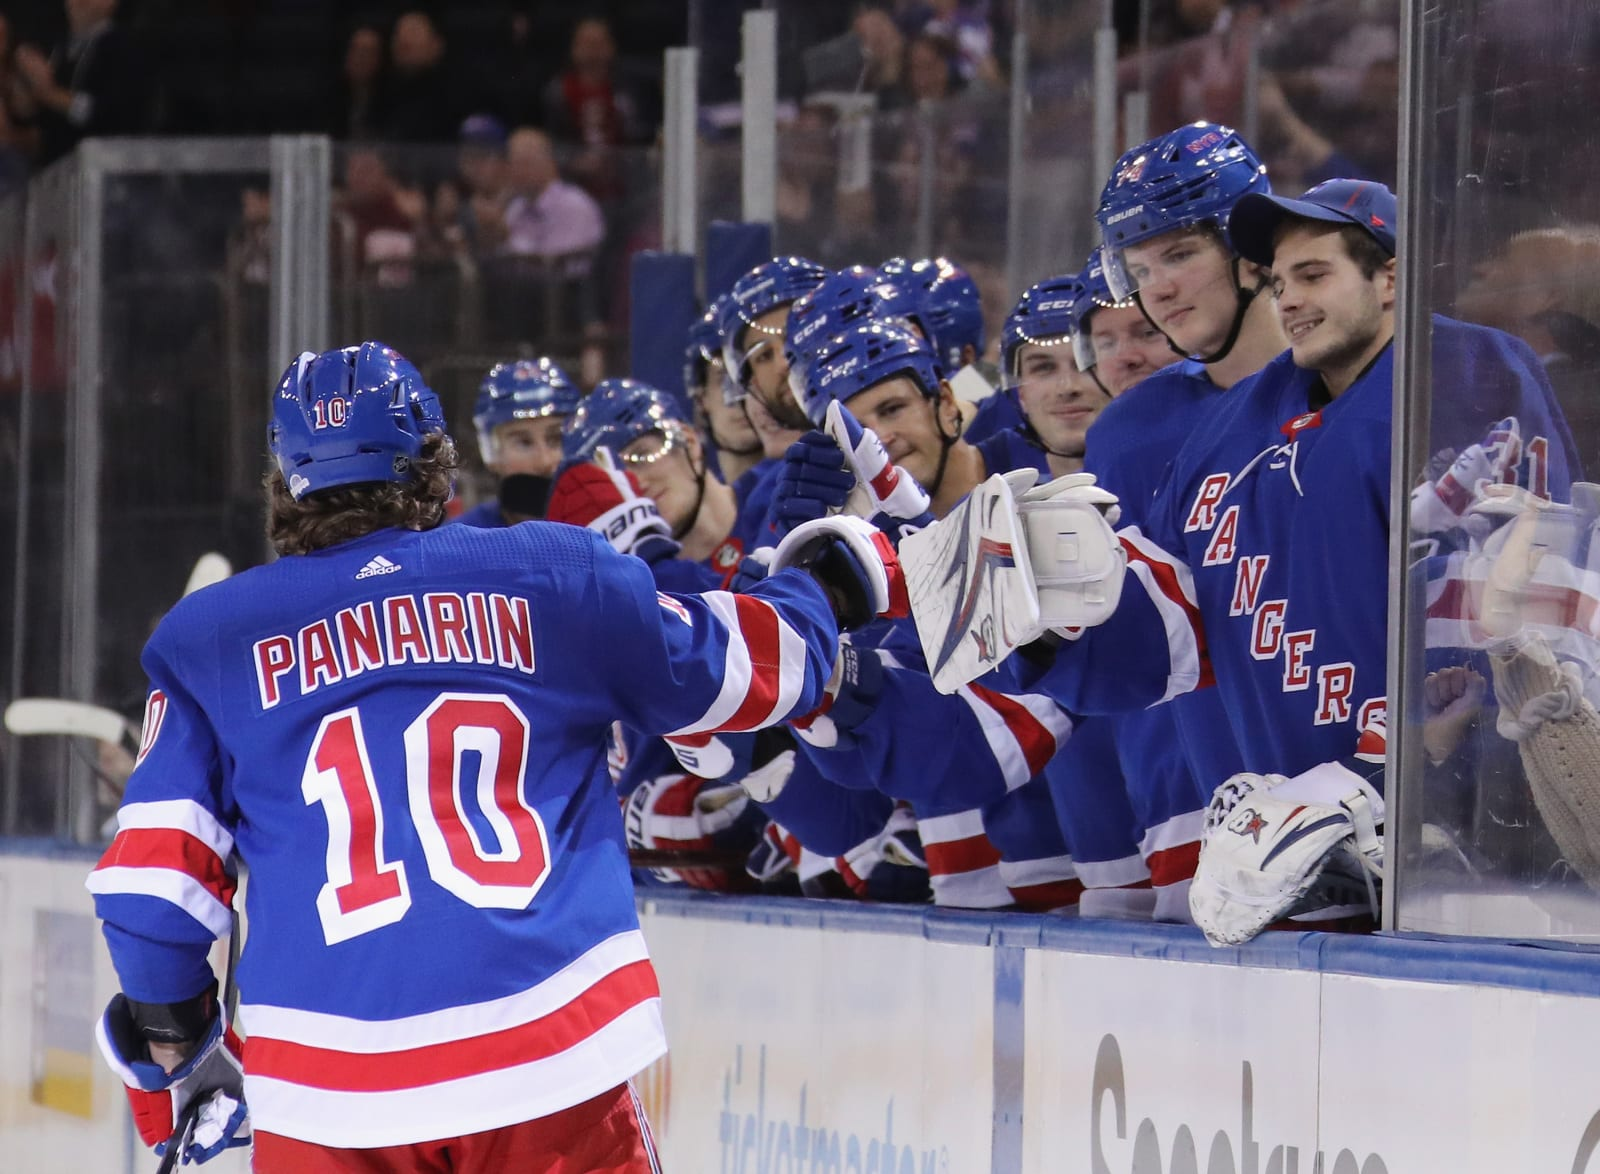 New York Rangers No Need To Panic About Panarin